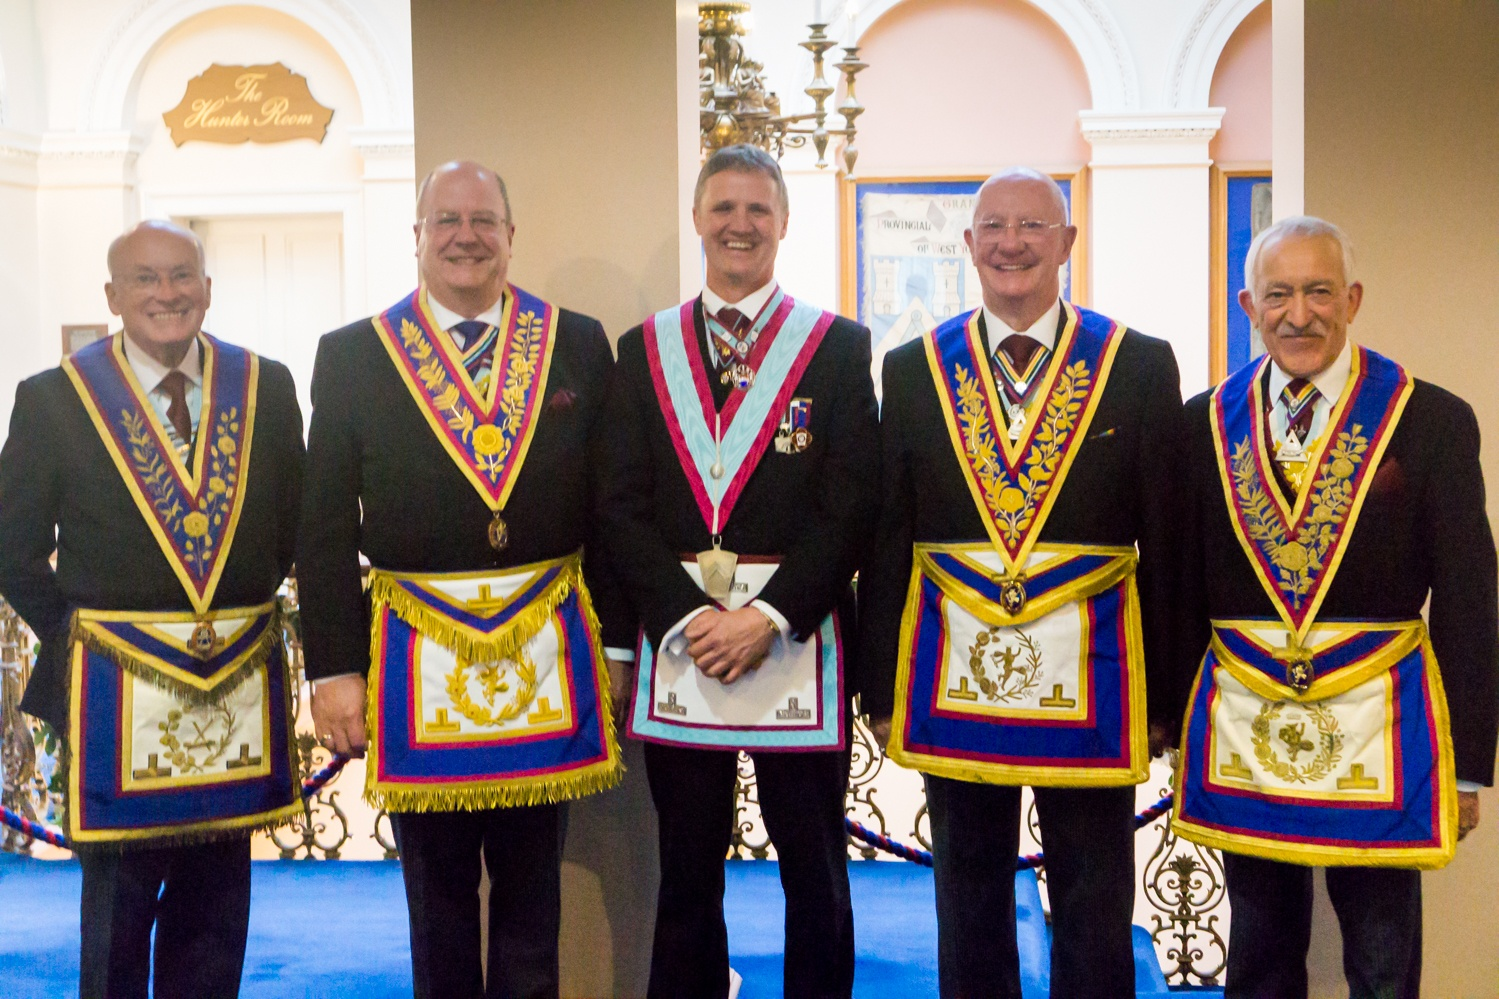 No Hiding place for W.Bro.Steven, he is now firmly up front at Cleeves Lodge of M.M.M. No.618